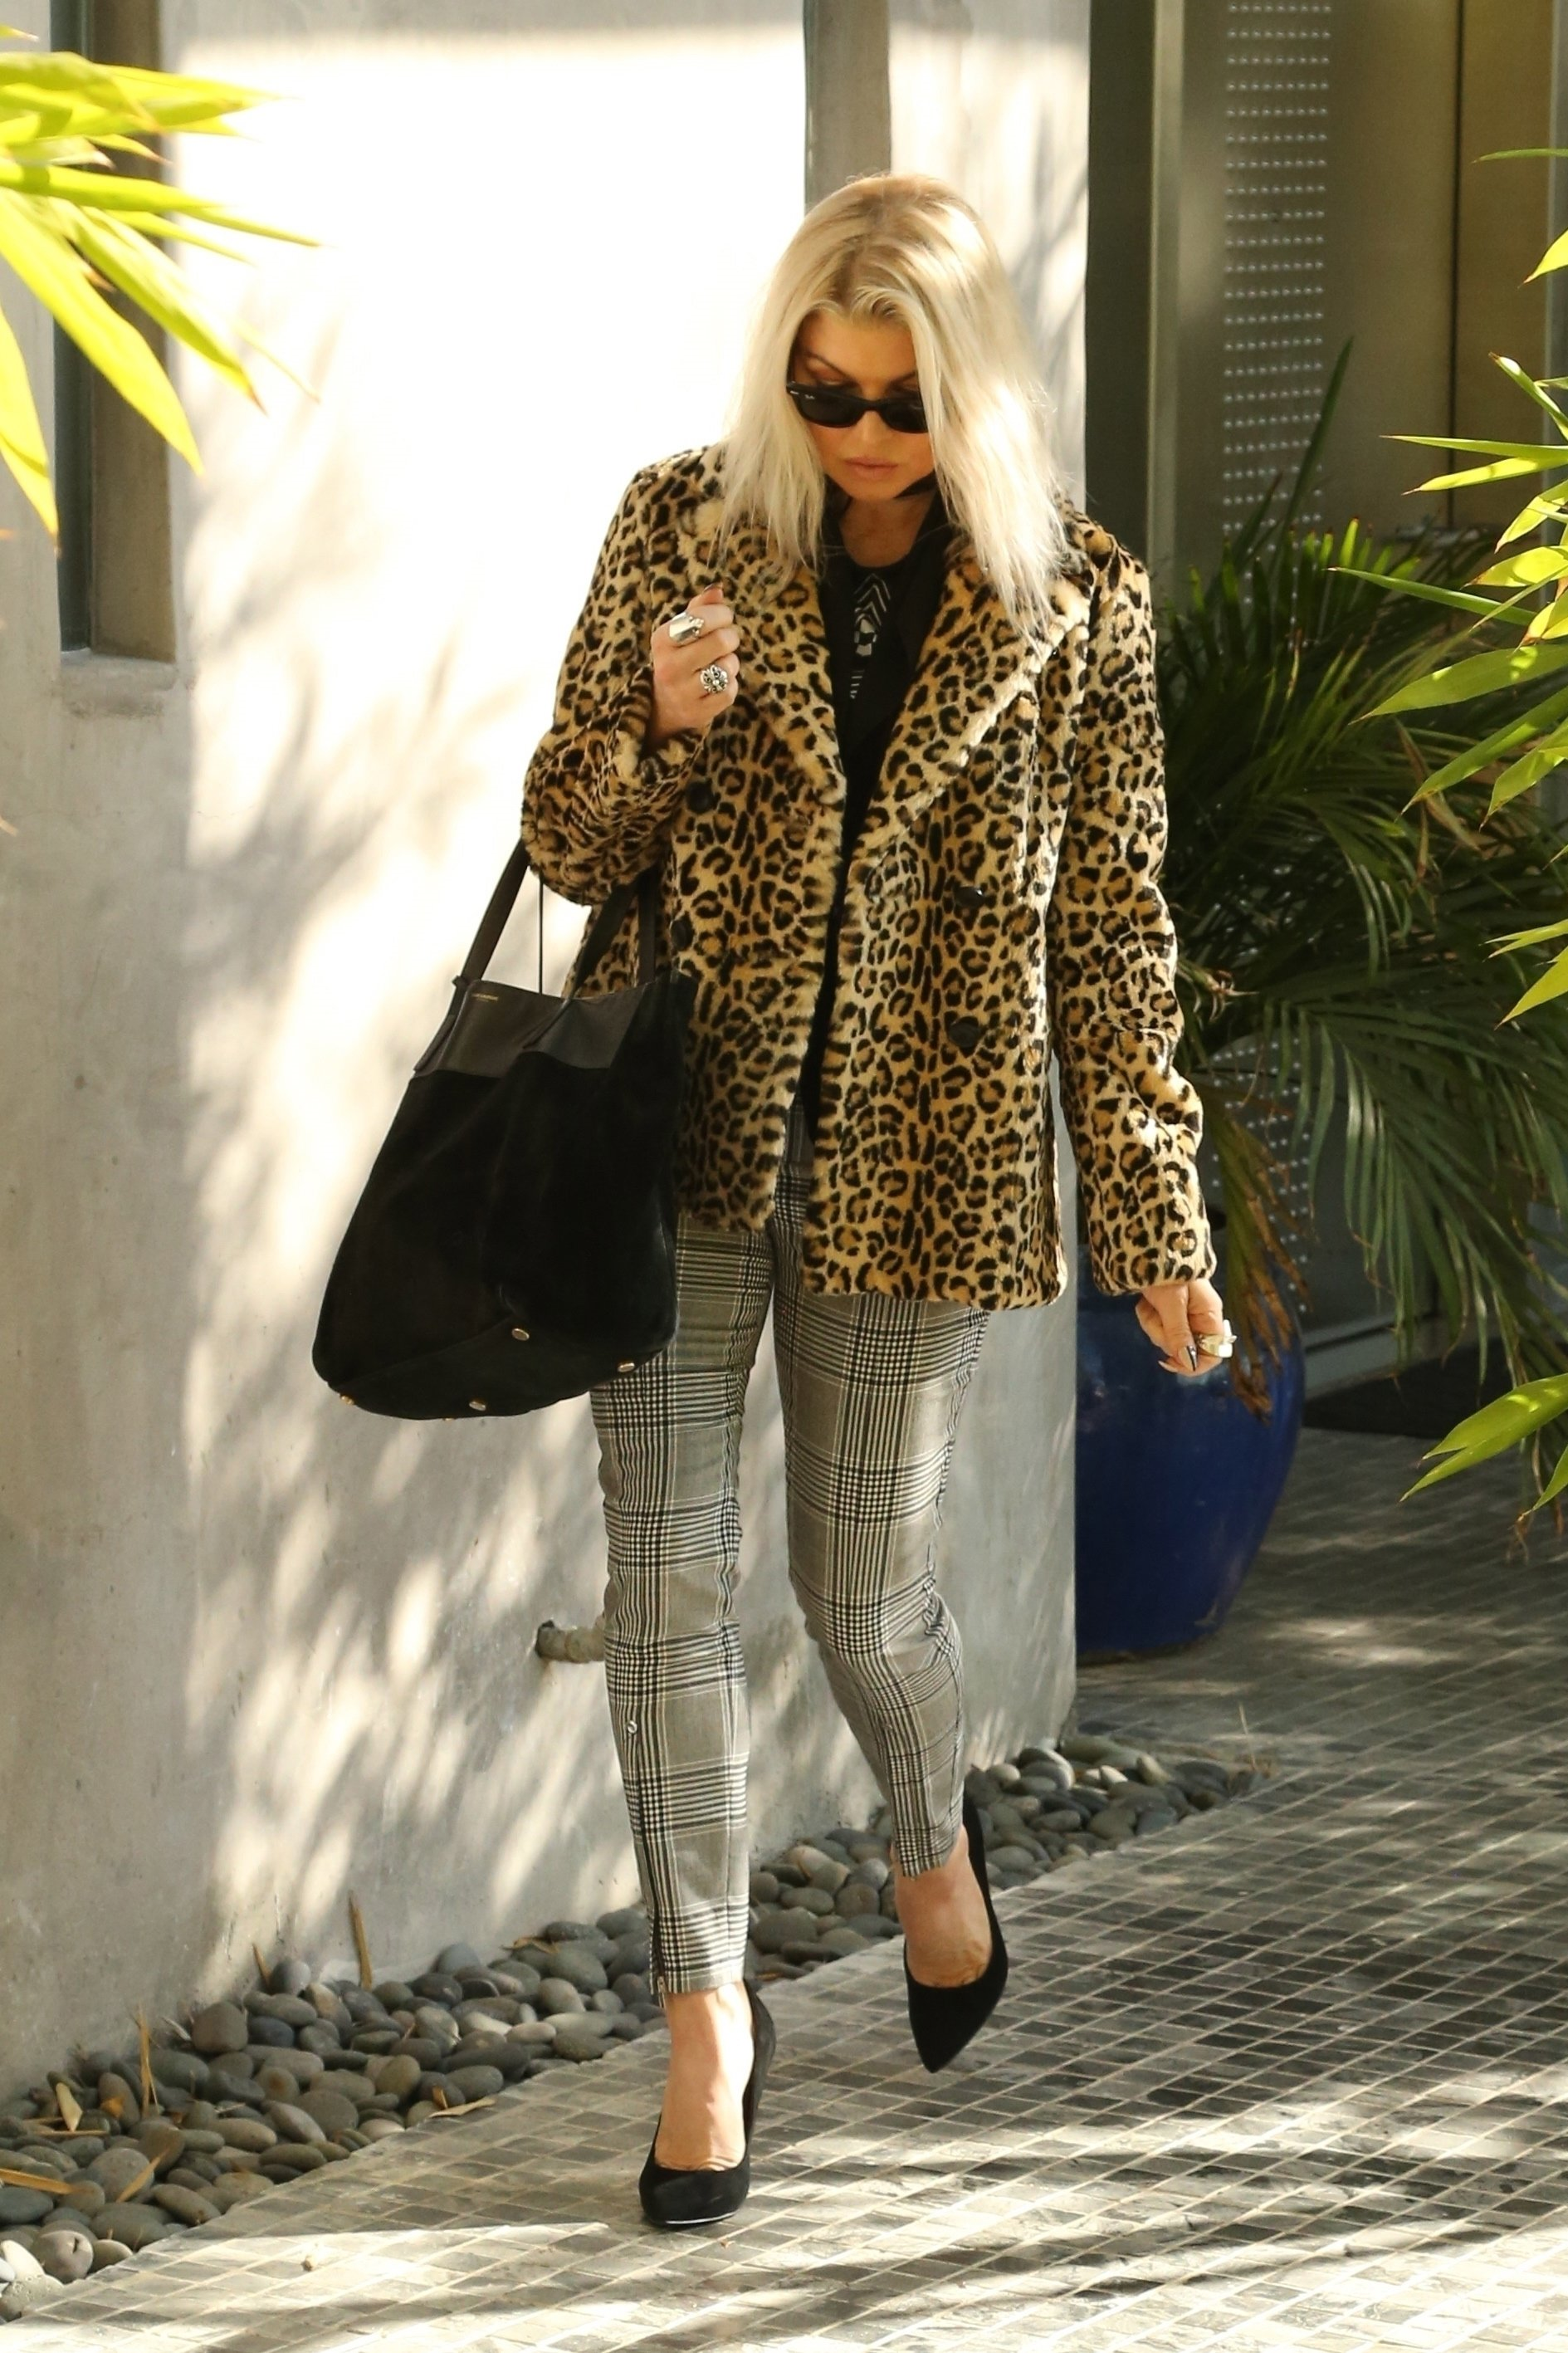 Los Angeles, CA  - *EXCLUSIVE*  - Fergie shows off her unique fashion sense as she hops into her limo. Fergie looks great in sunglasses, a leopard printed coat, black top, plaid pants, black pumps, and a black Saint Laurent tote bag.  Pictured: Fergie  BACKGRID USA 30 NOVEMBER 2017, Image: 356578846, License: Rights-managed, Restrictions: , Model Release: no, Credit line: Profimedia, AKM-GSI